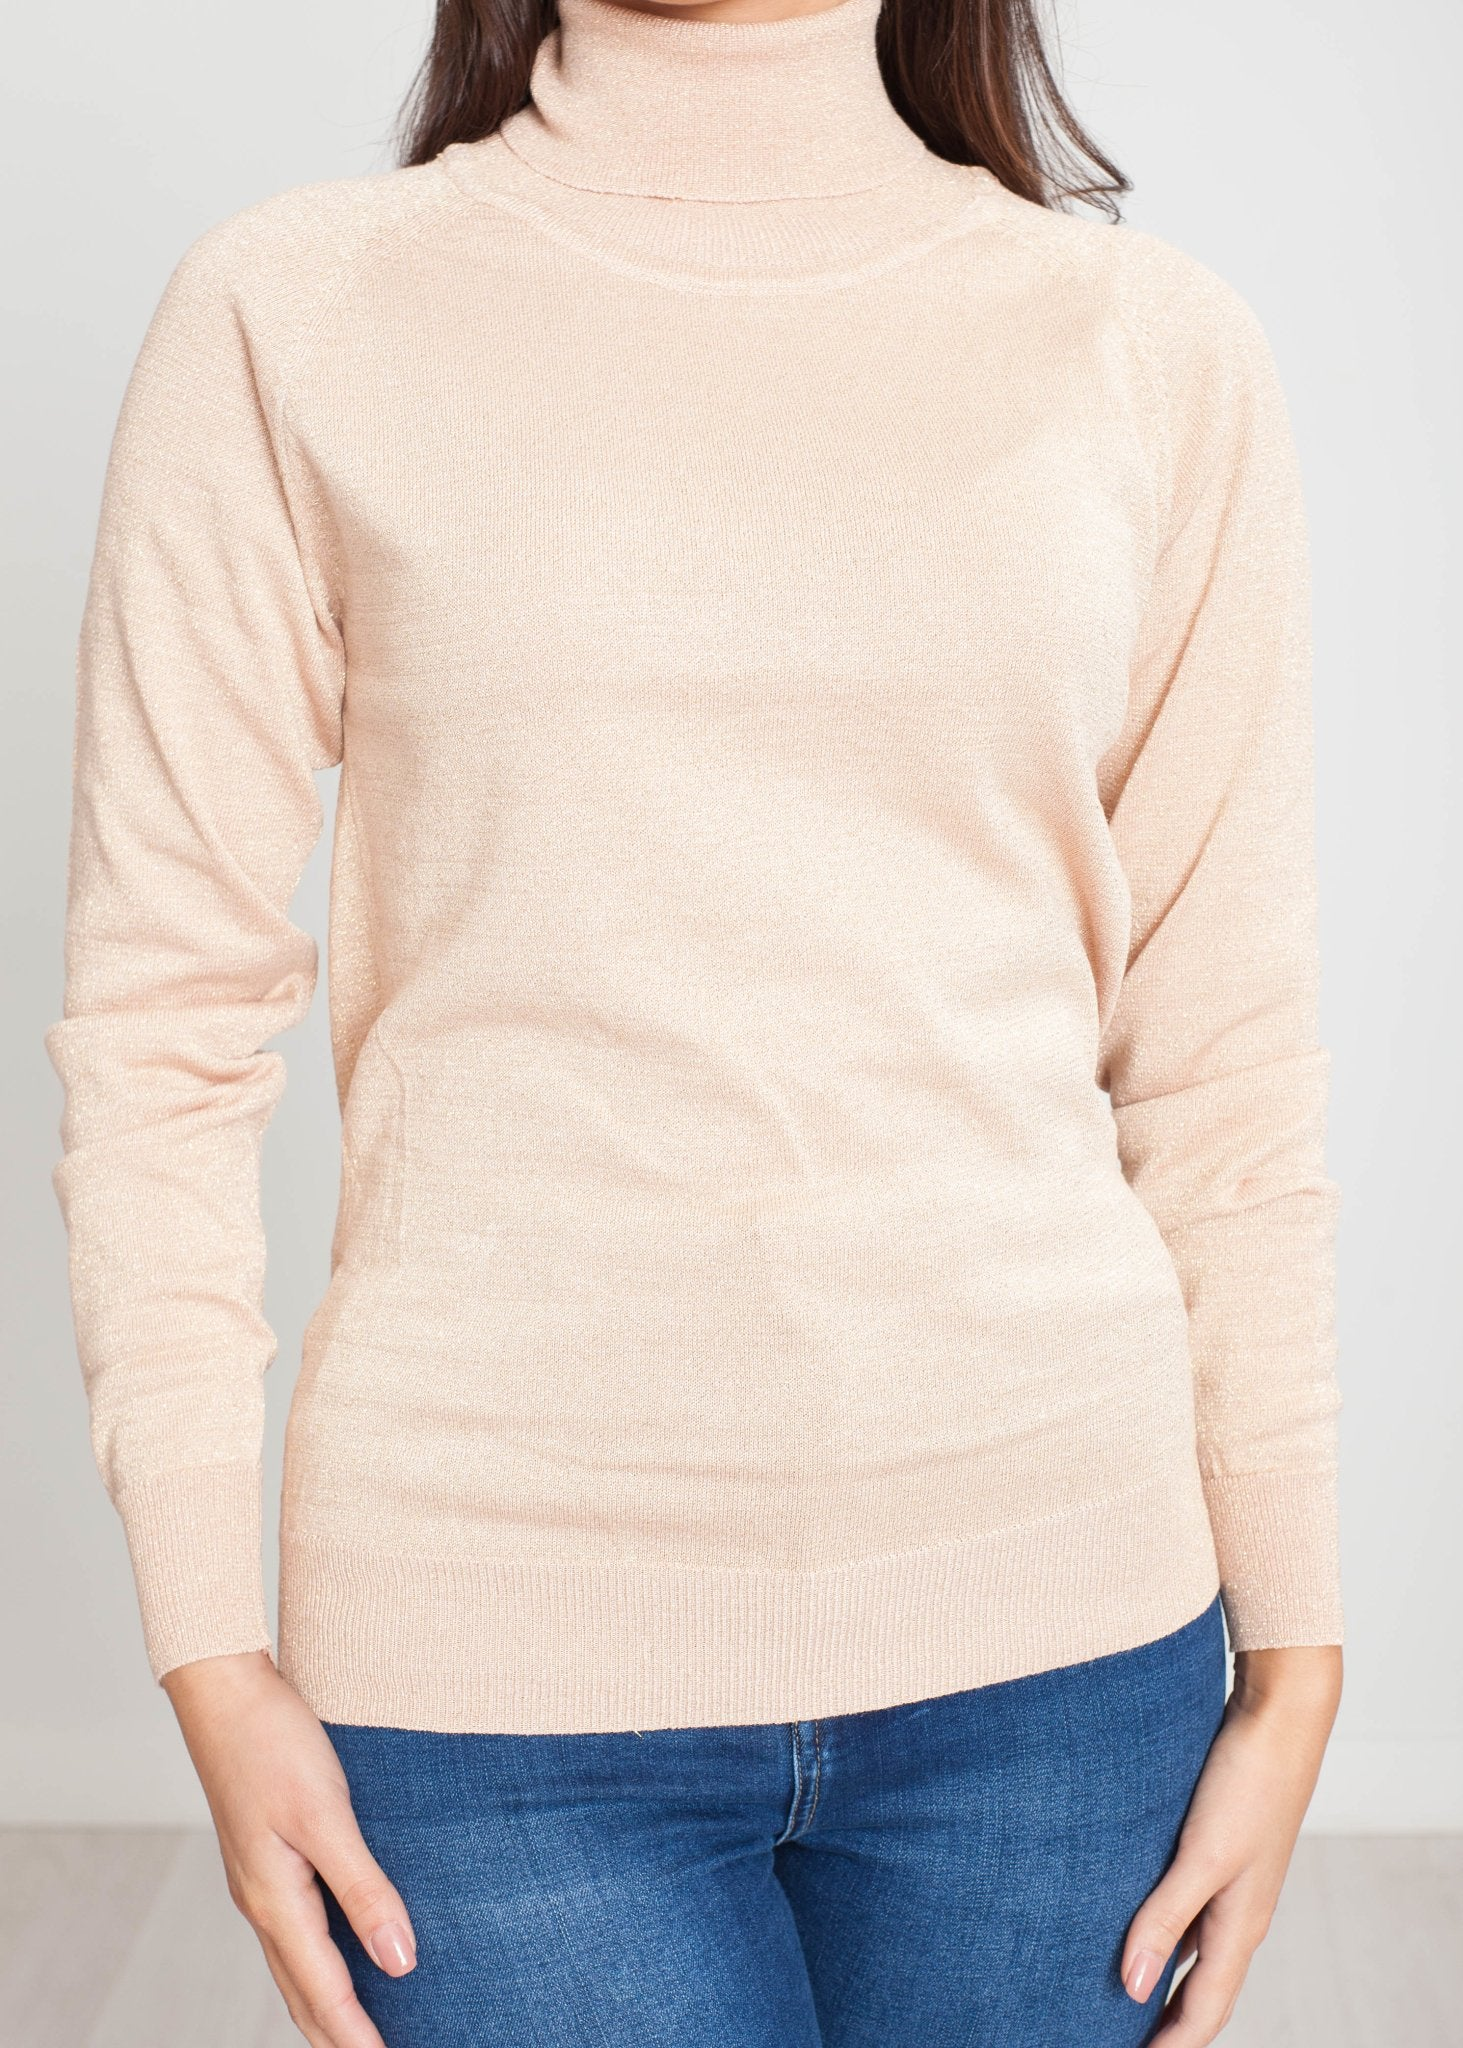 Tina Polo Neck In Blush Shimmer - The Walk in Wardrobe